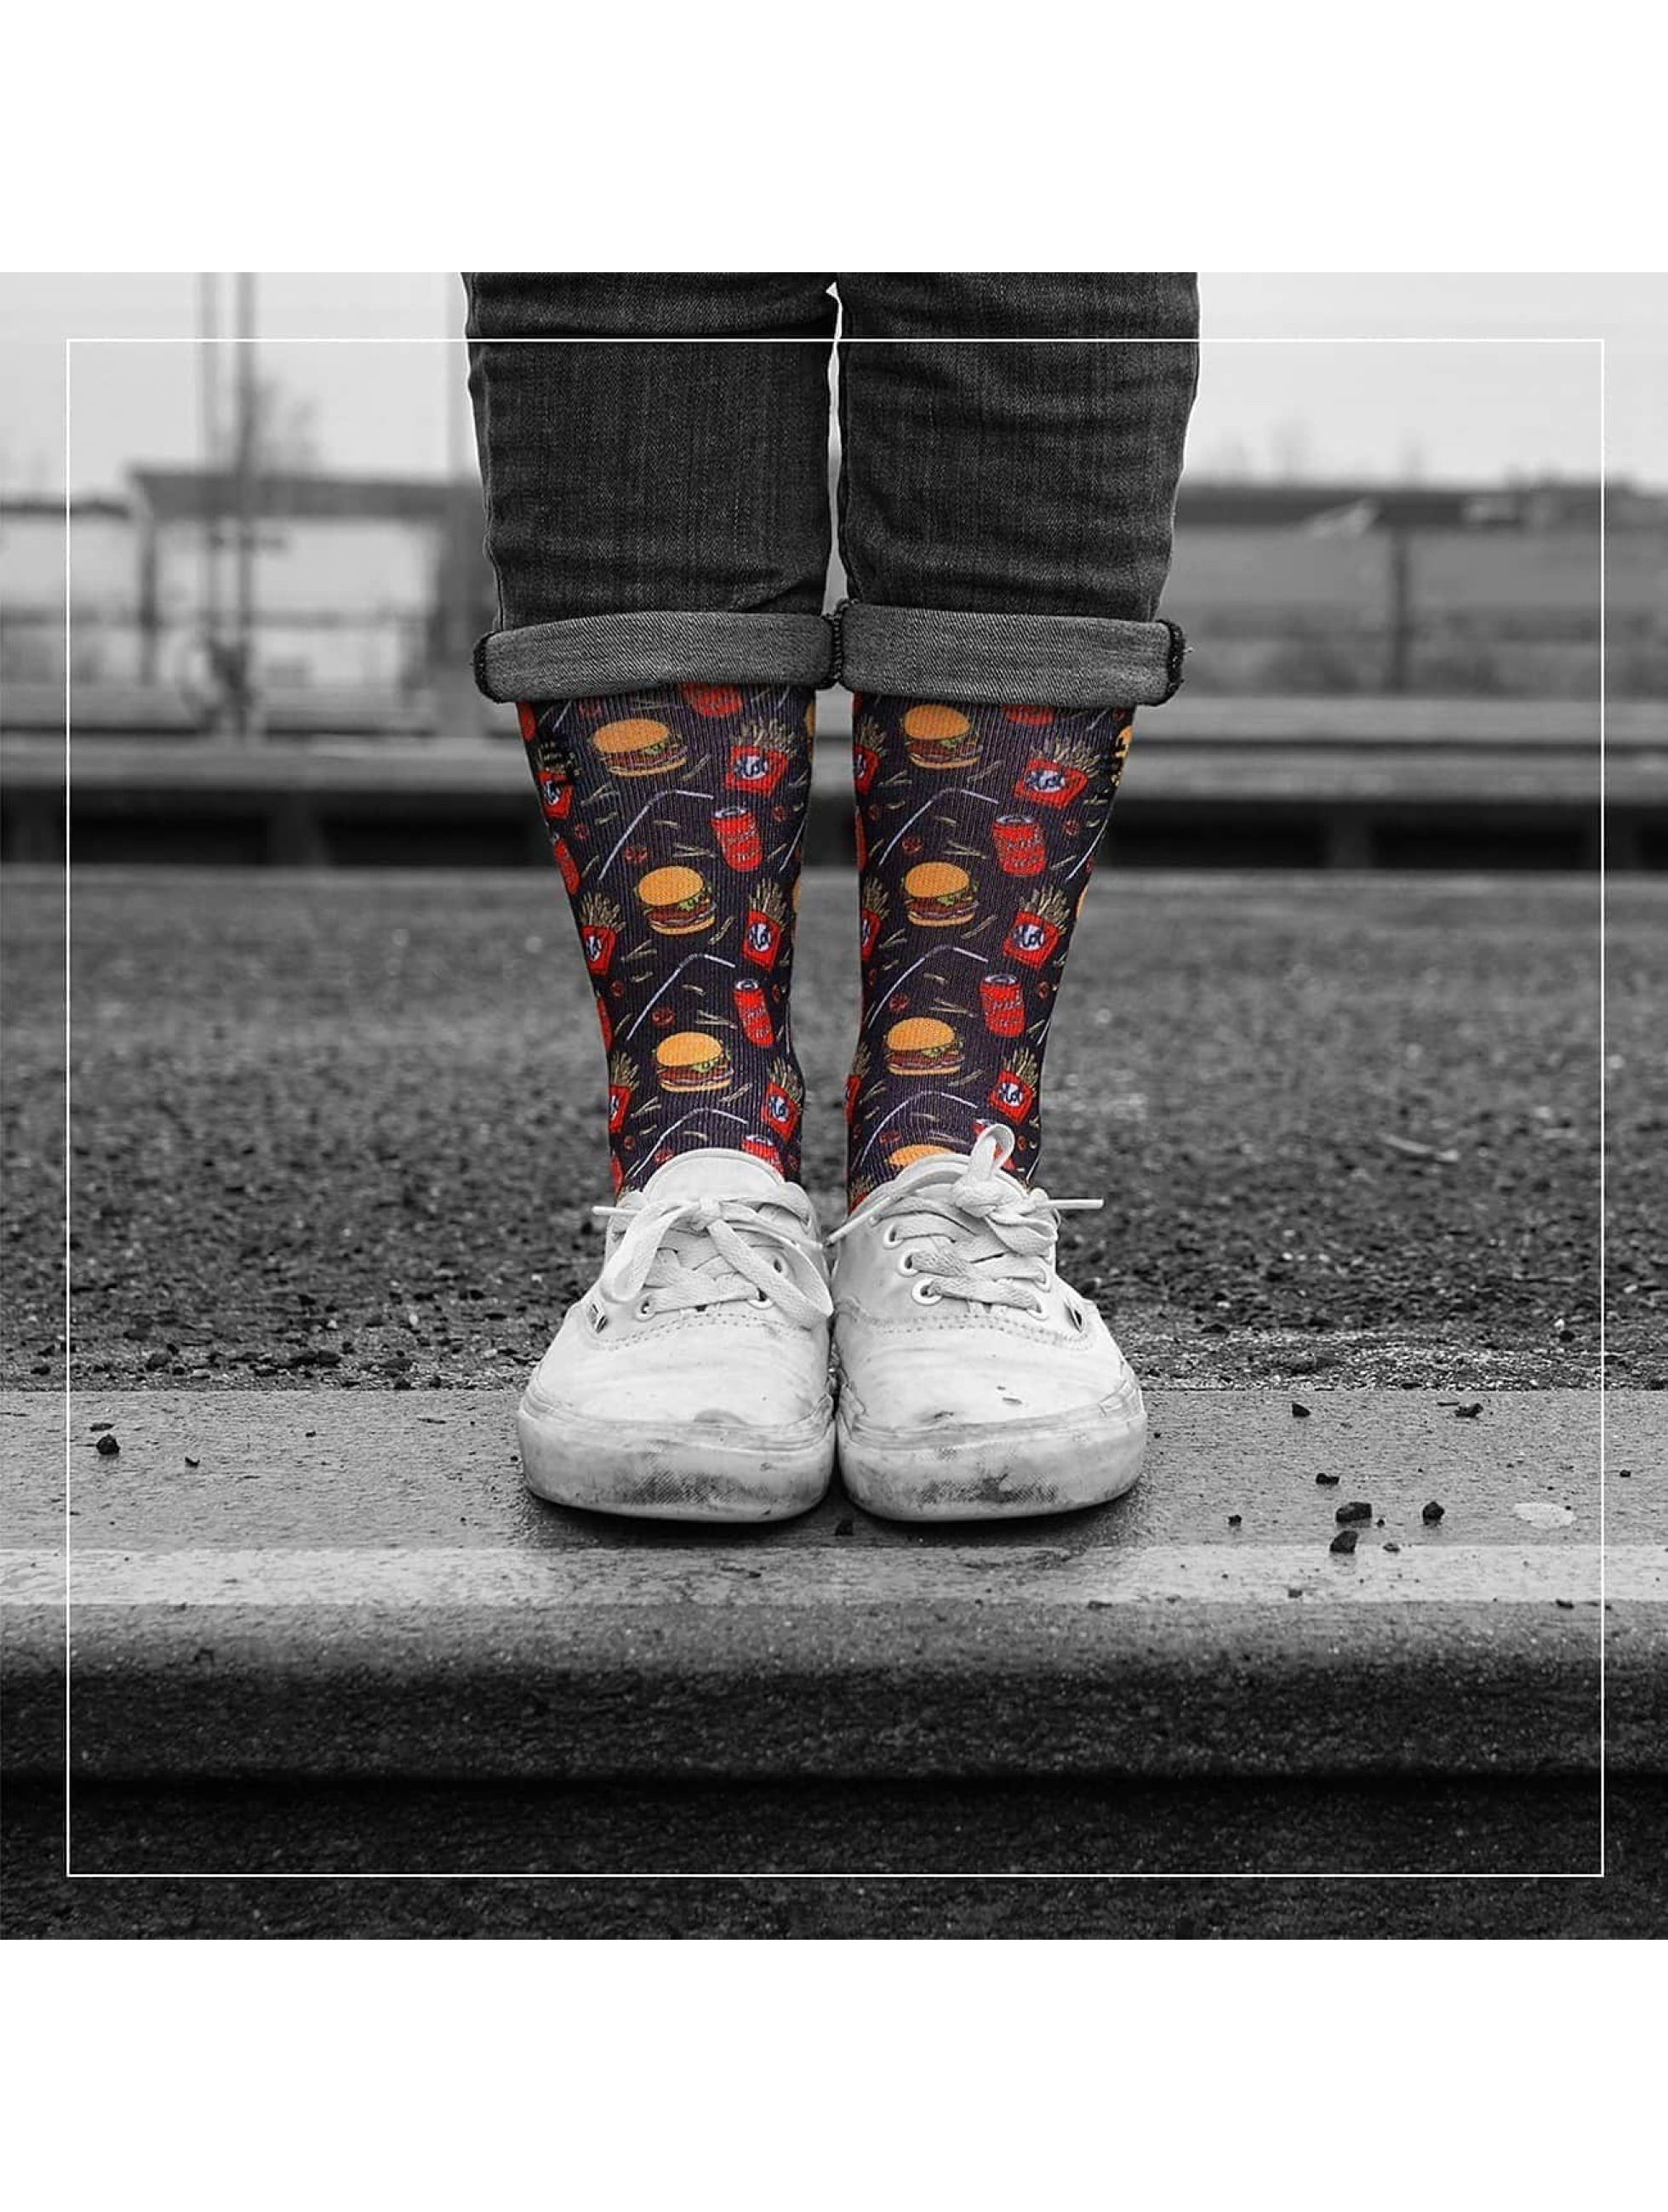 LUF SOX Chaussettes King Menu multicolore